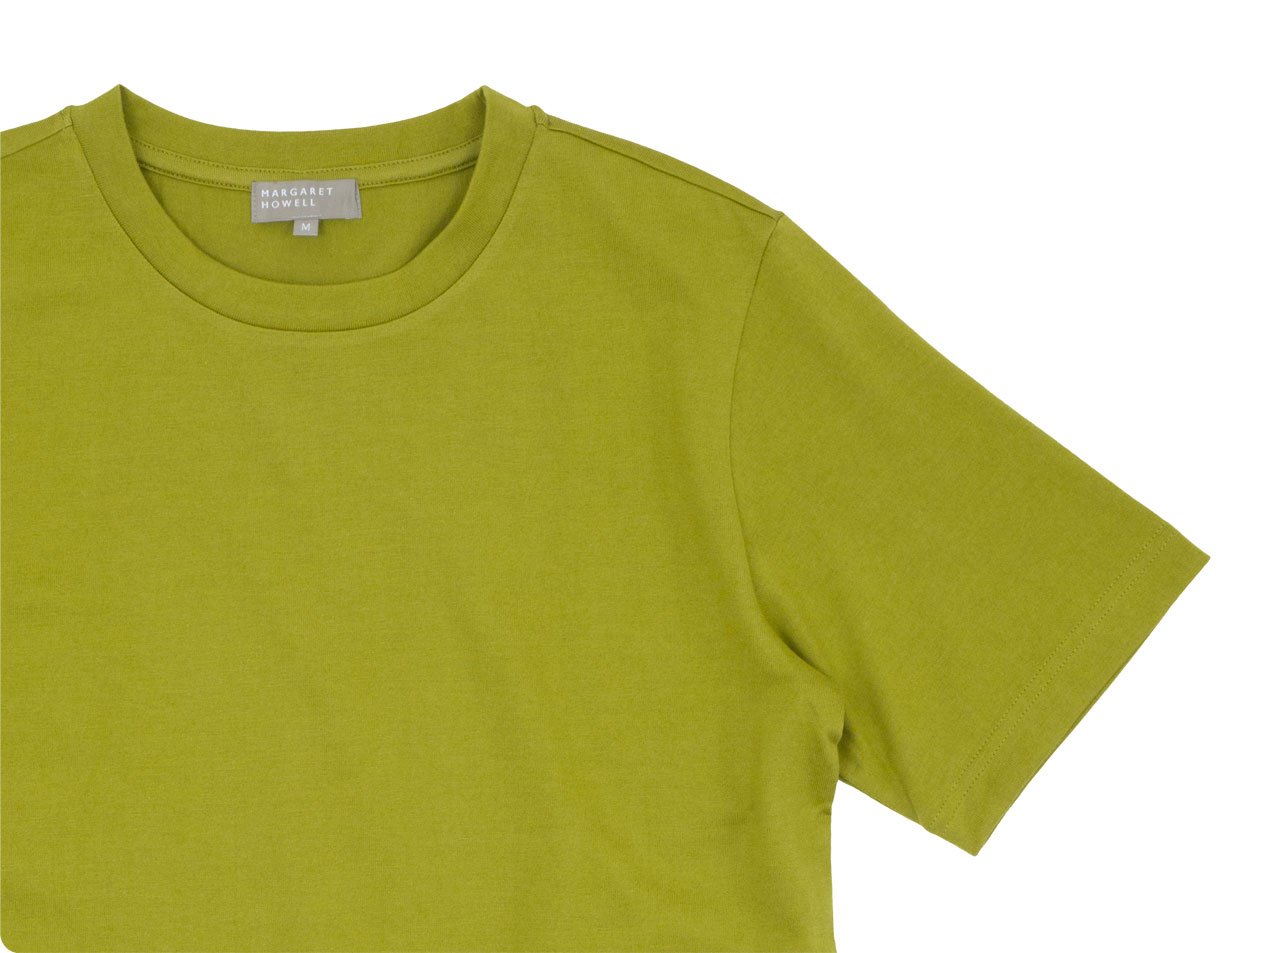 MARGARET HOWELL SUVIN COTTON JERSEY T-SHIRTS